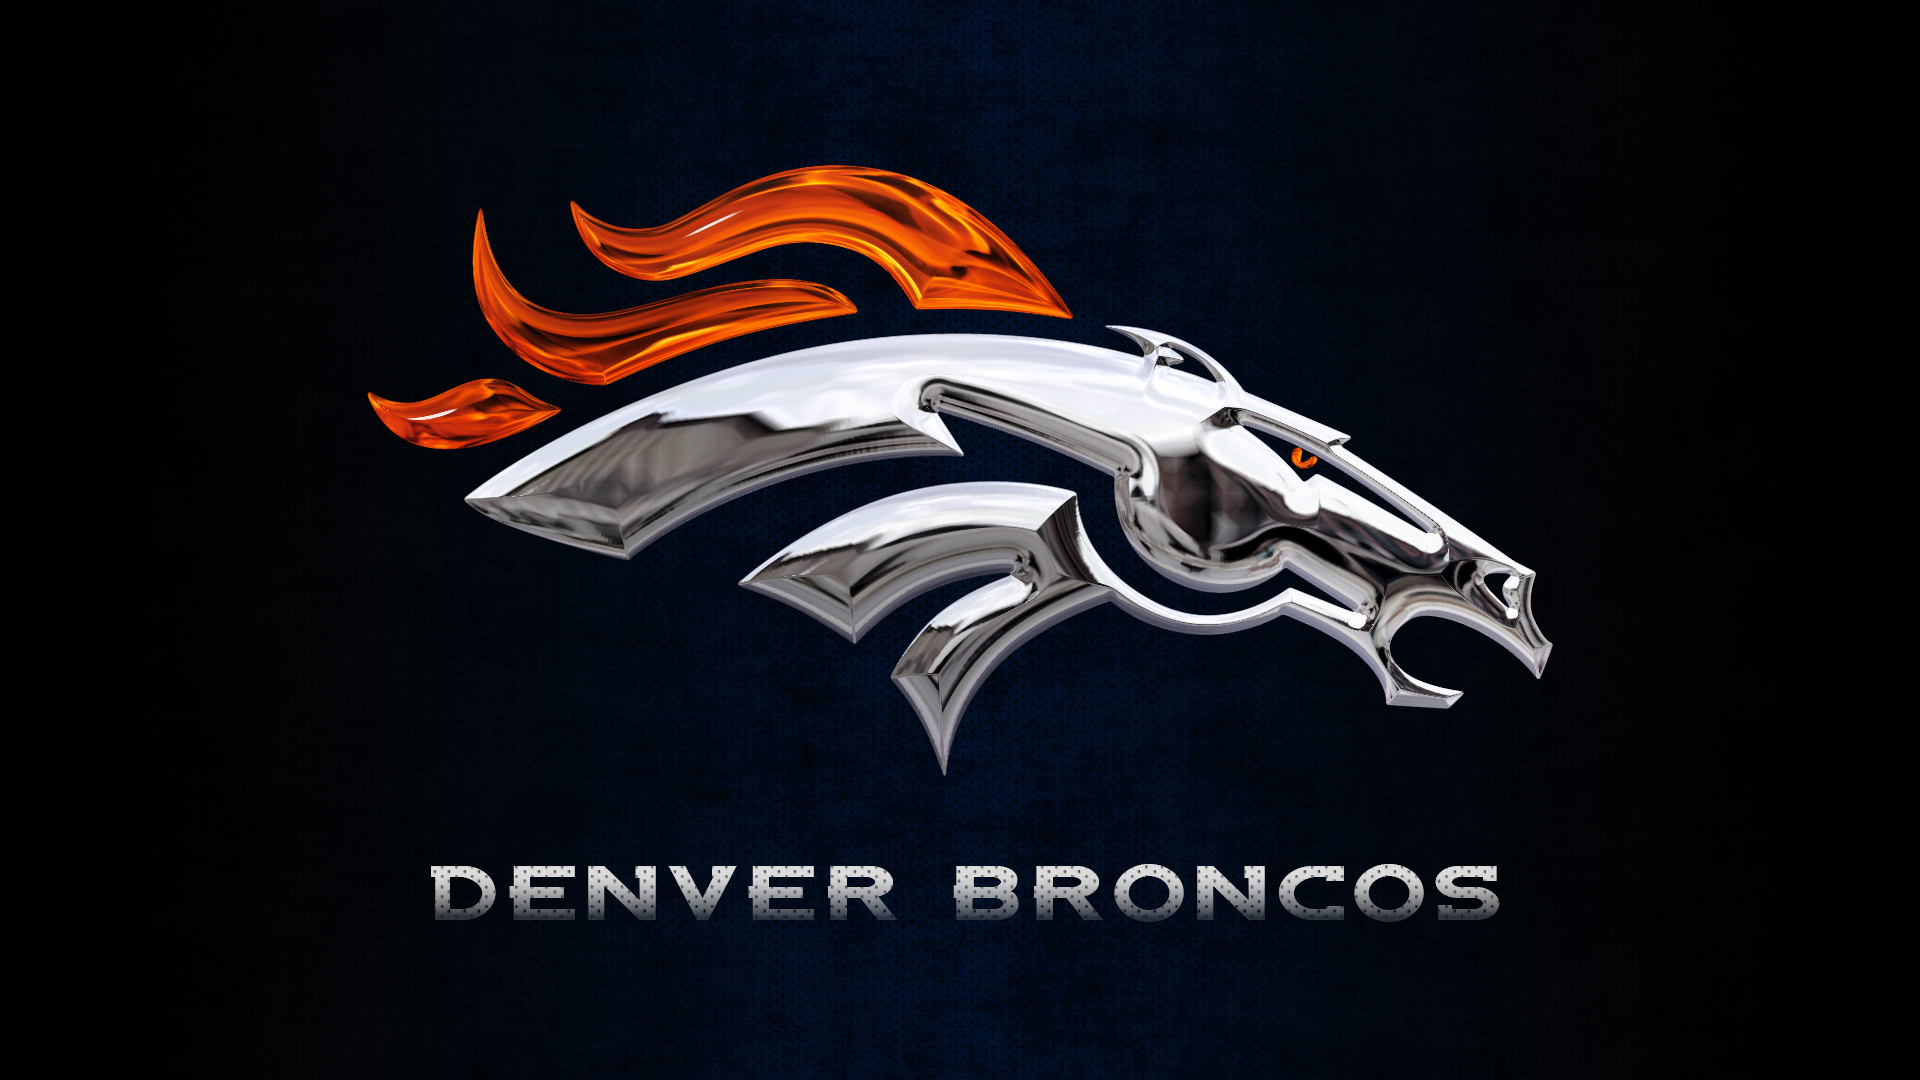 Cool bronco pictures